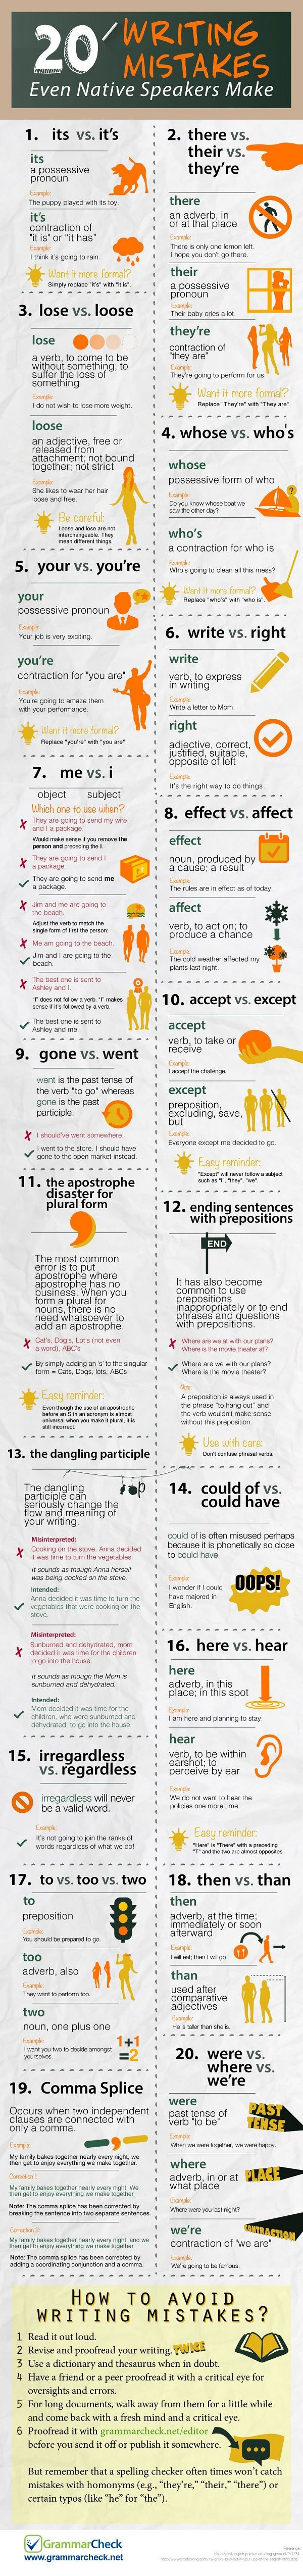 Infographic: 20 Common Writing Mistakes That Most People Make - DesignTAXI.com